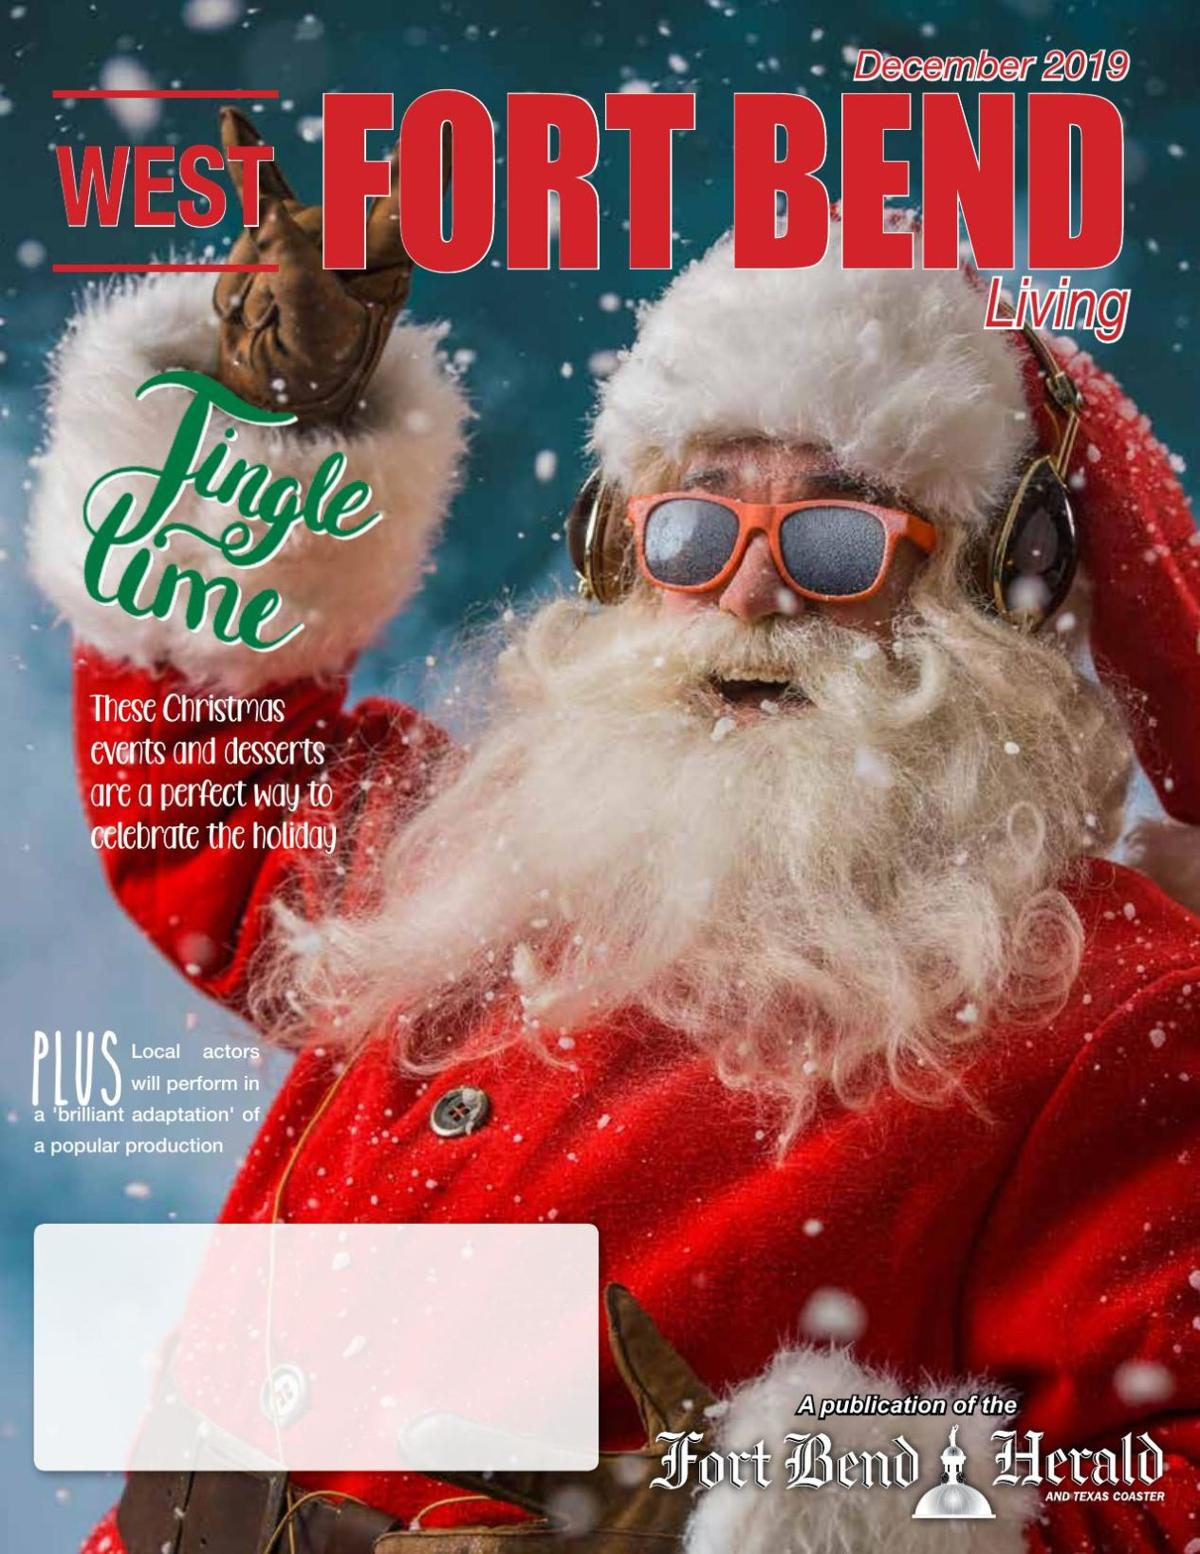 West Fort Bend Living: December 2019